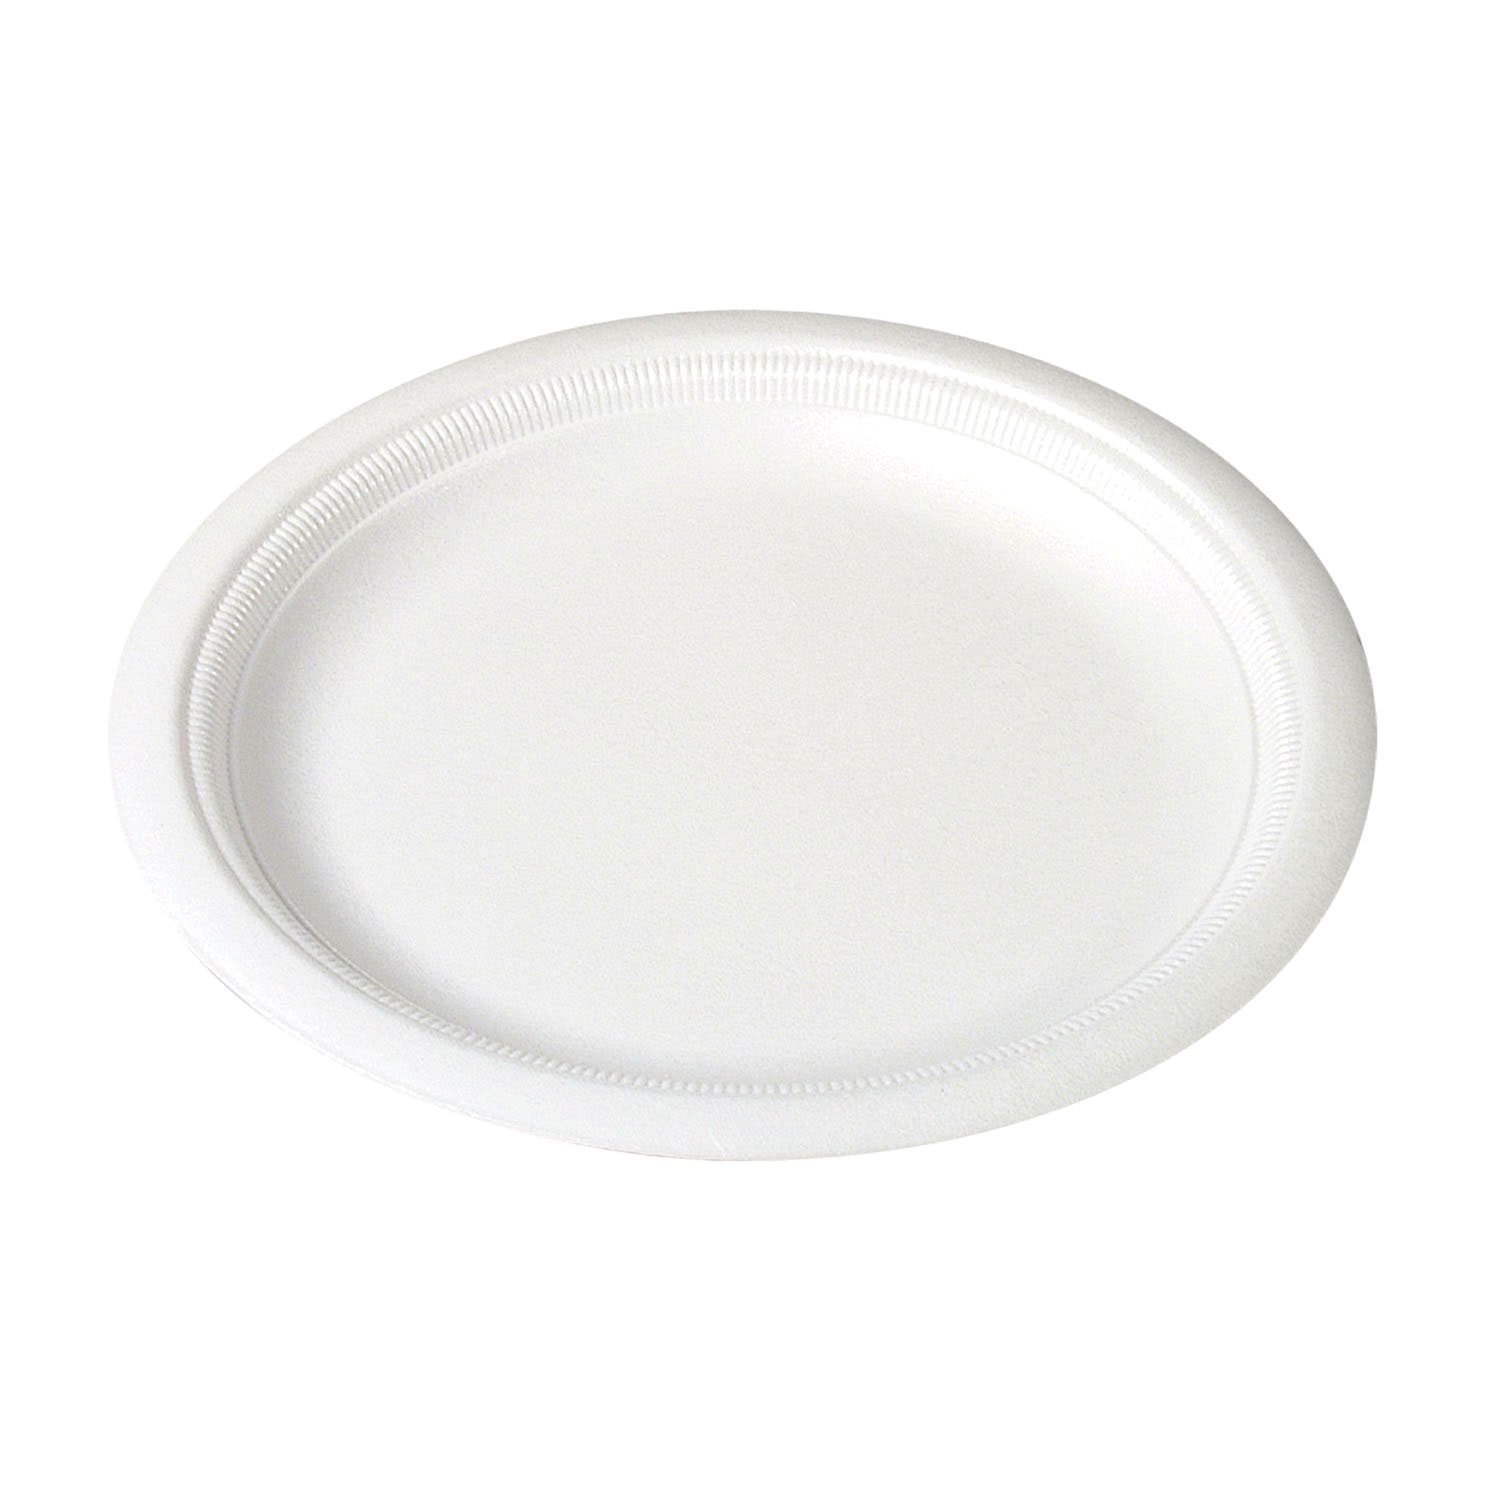 Plate clipart oval plate. White round party plates